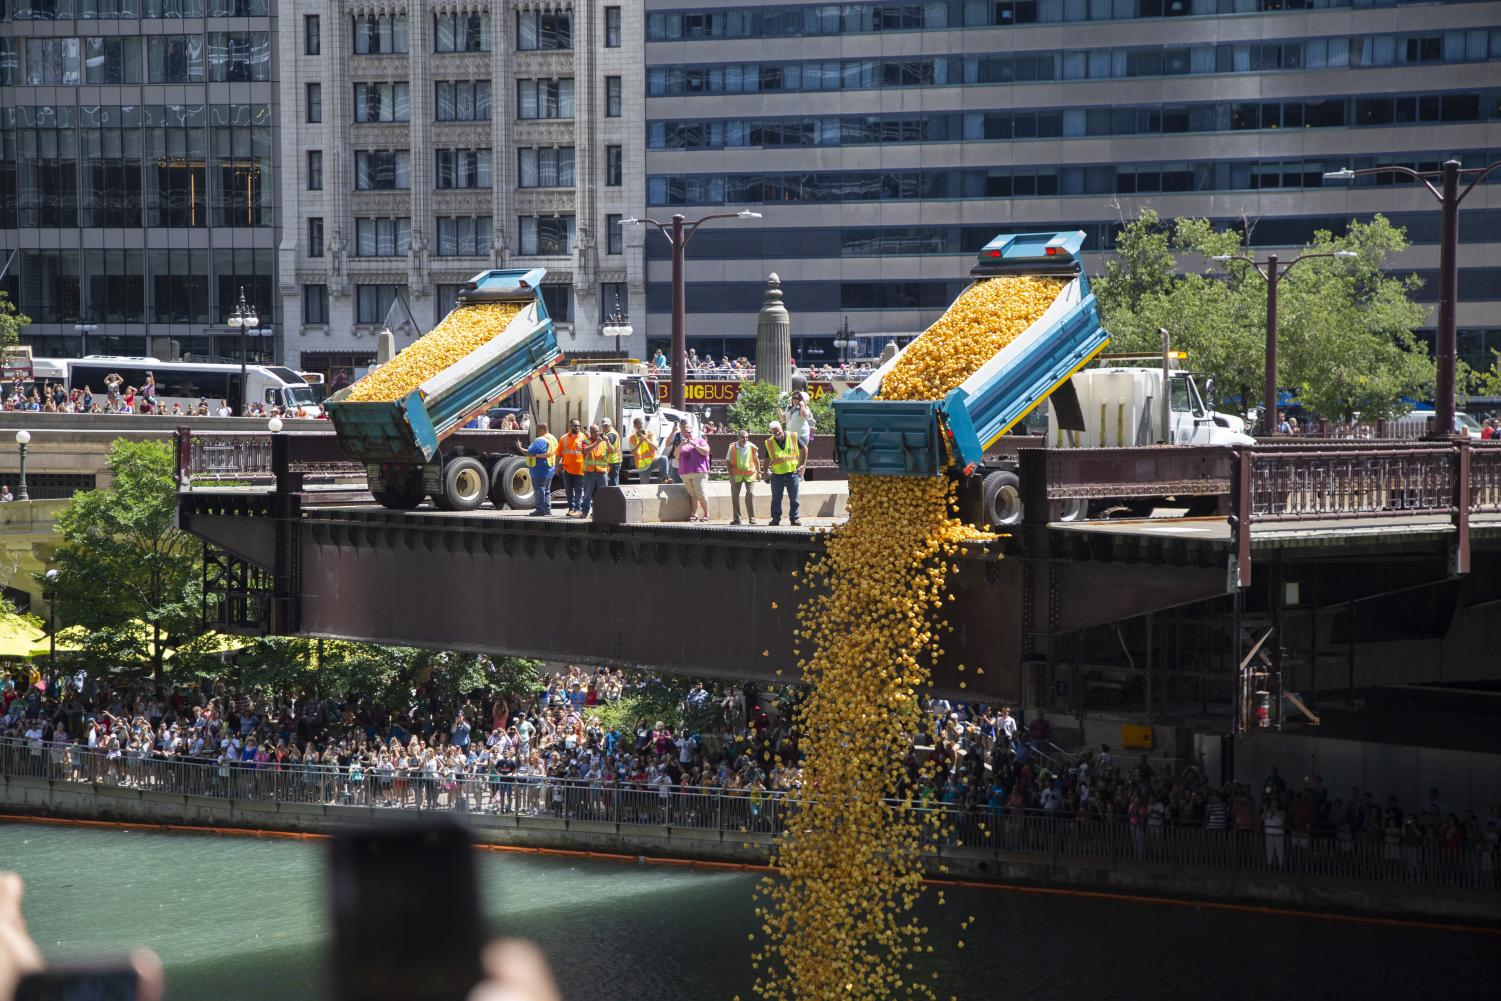 Over+63%2C000+rubber+duckies+were+dumped+into+the+Chicago+River+from+the+Wabash+Bridge+Thursday%2C+Aug.+8.